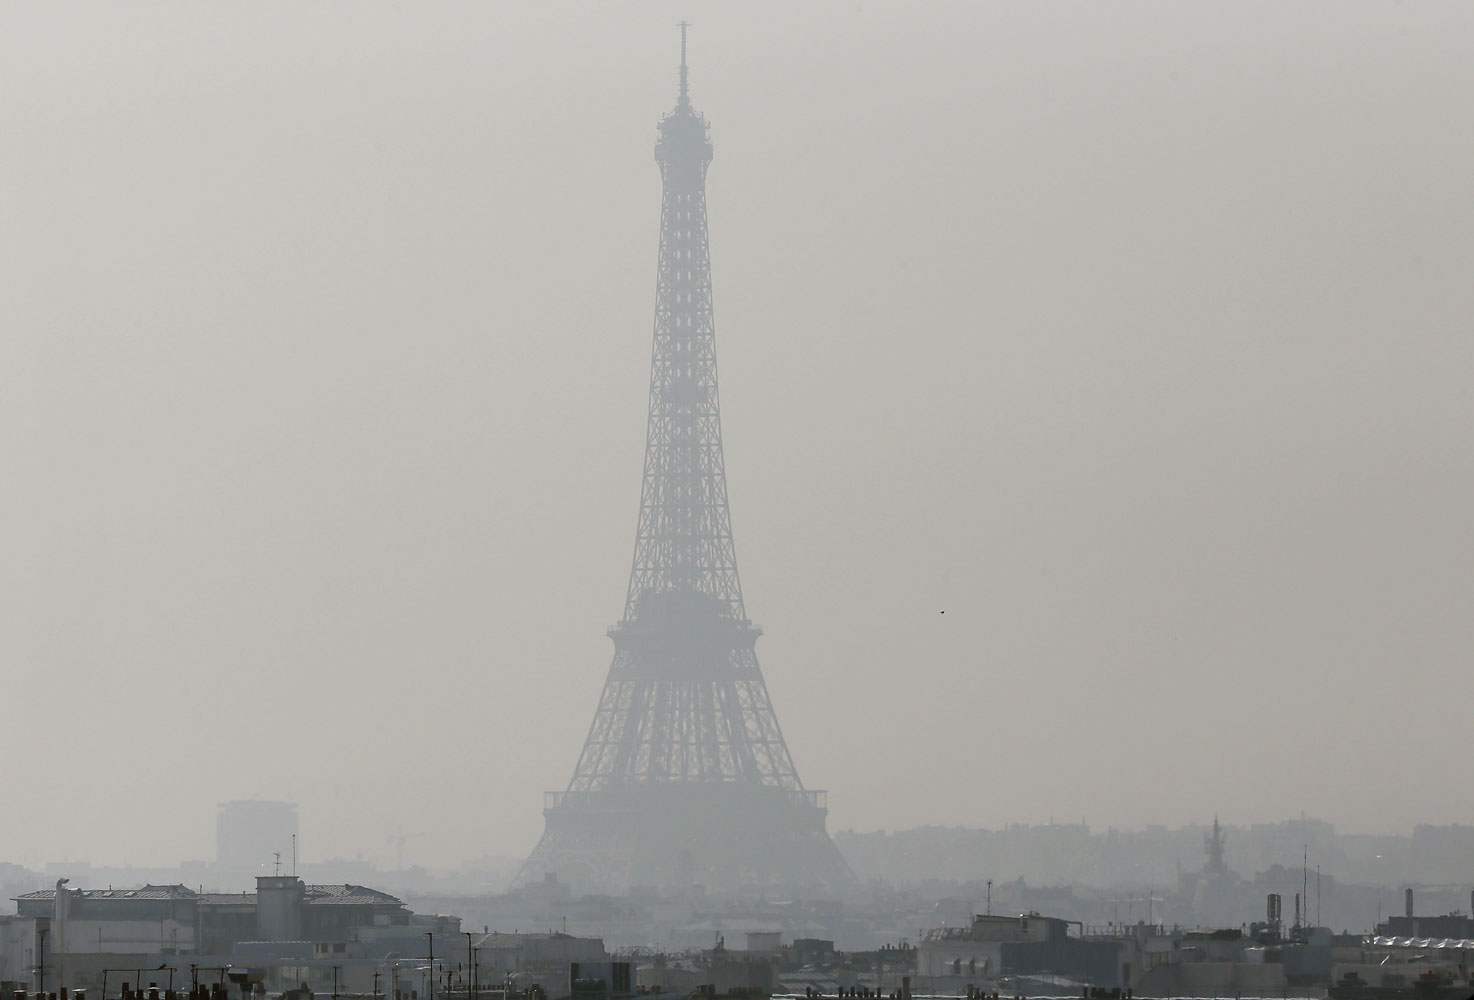 A view of the Eiffel Tower seen through thick smog, on March 14, 2014, in Paris.